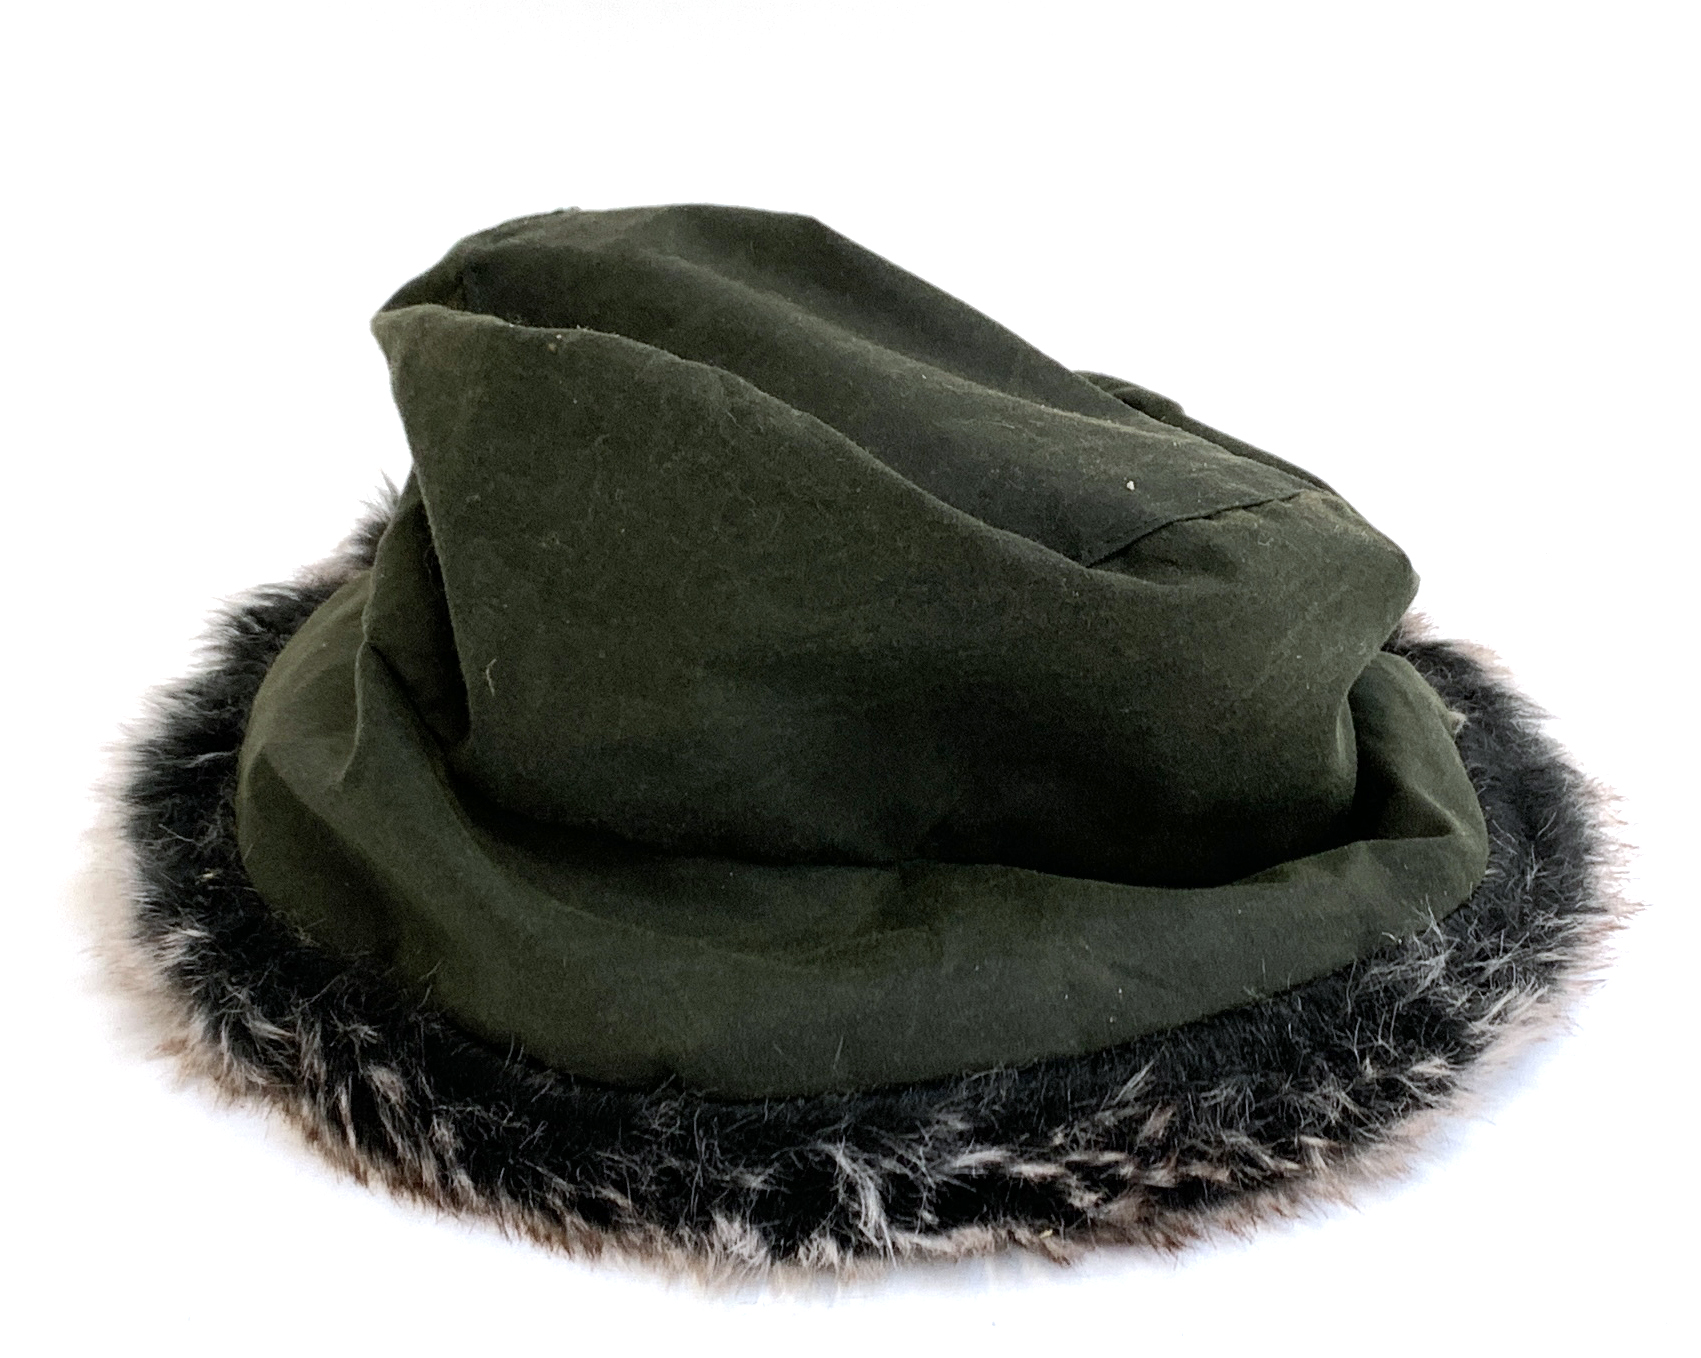 A Scotts of Stowe wax cotton and fur trimmed hat